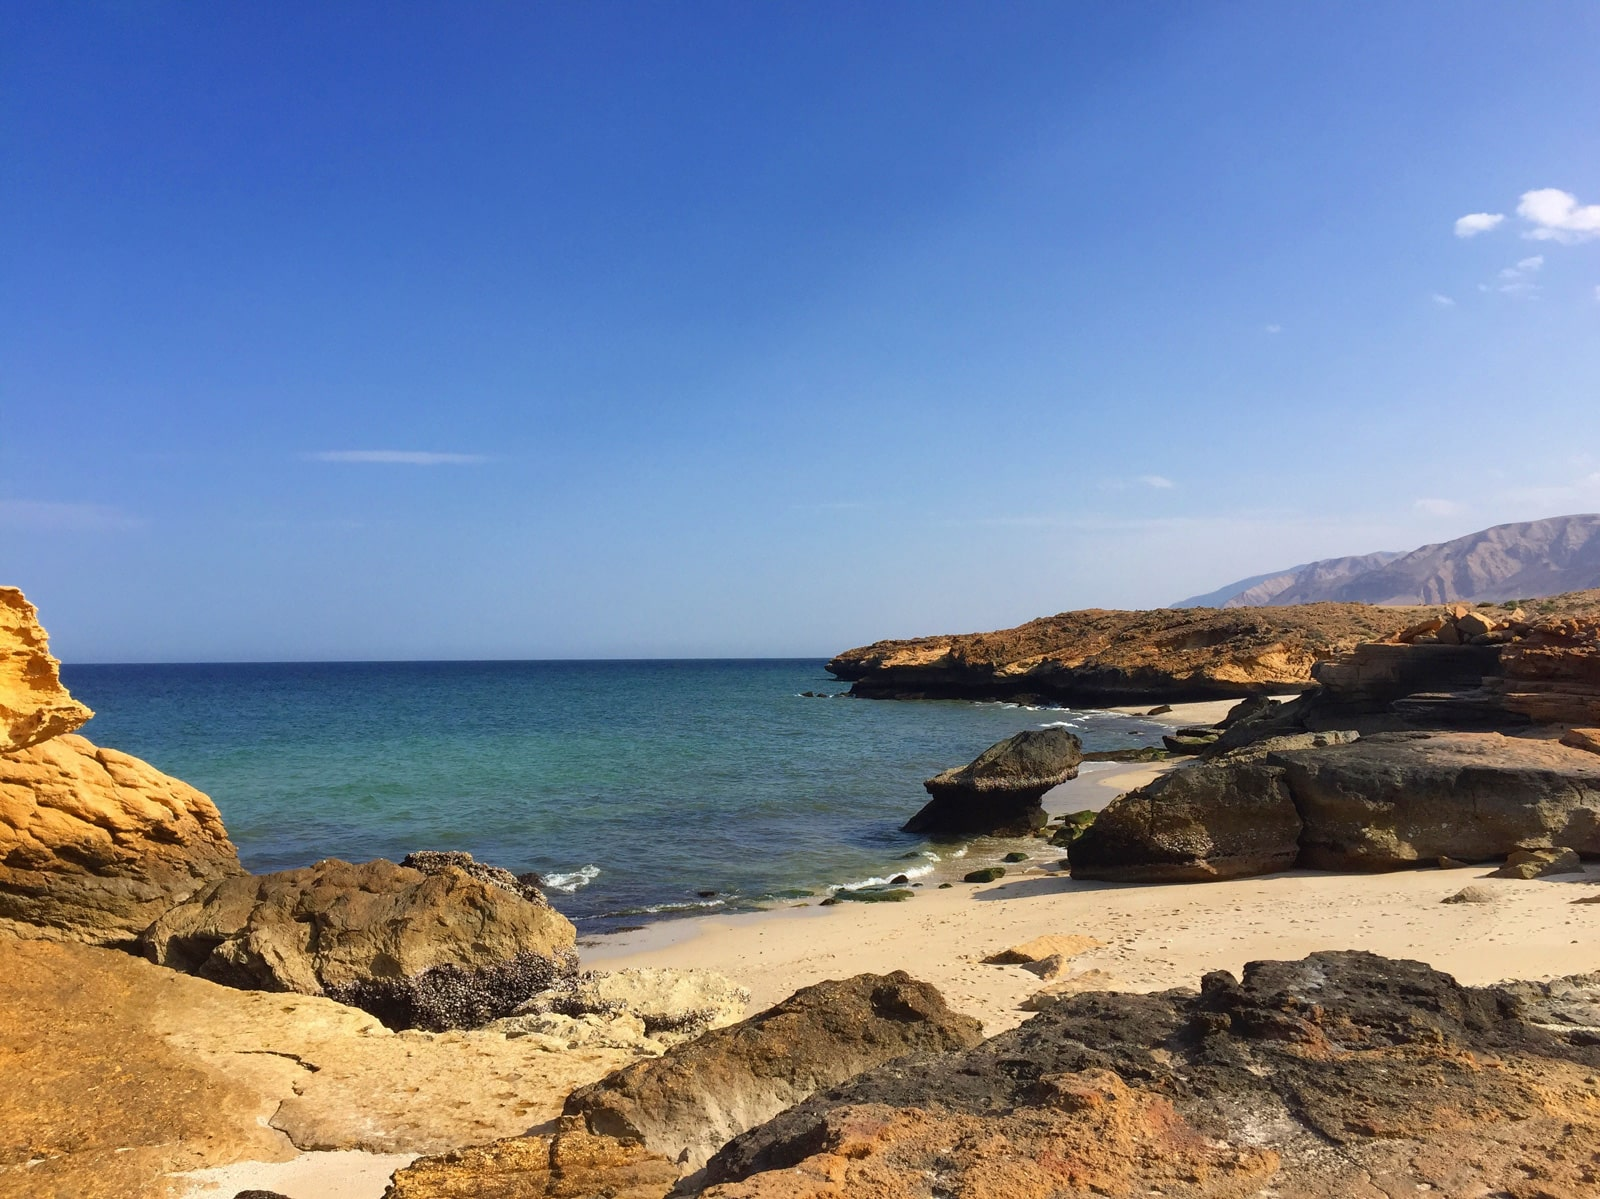 Solo female traveler from Kuwait and Oman - Beaches at Finns, Oman